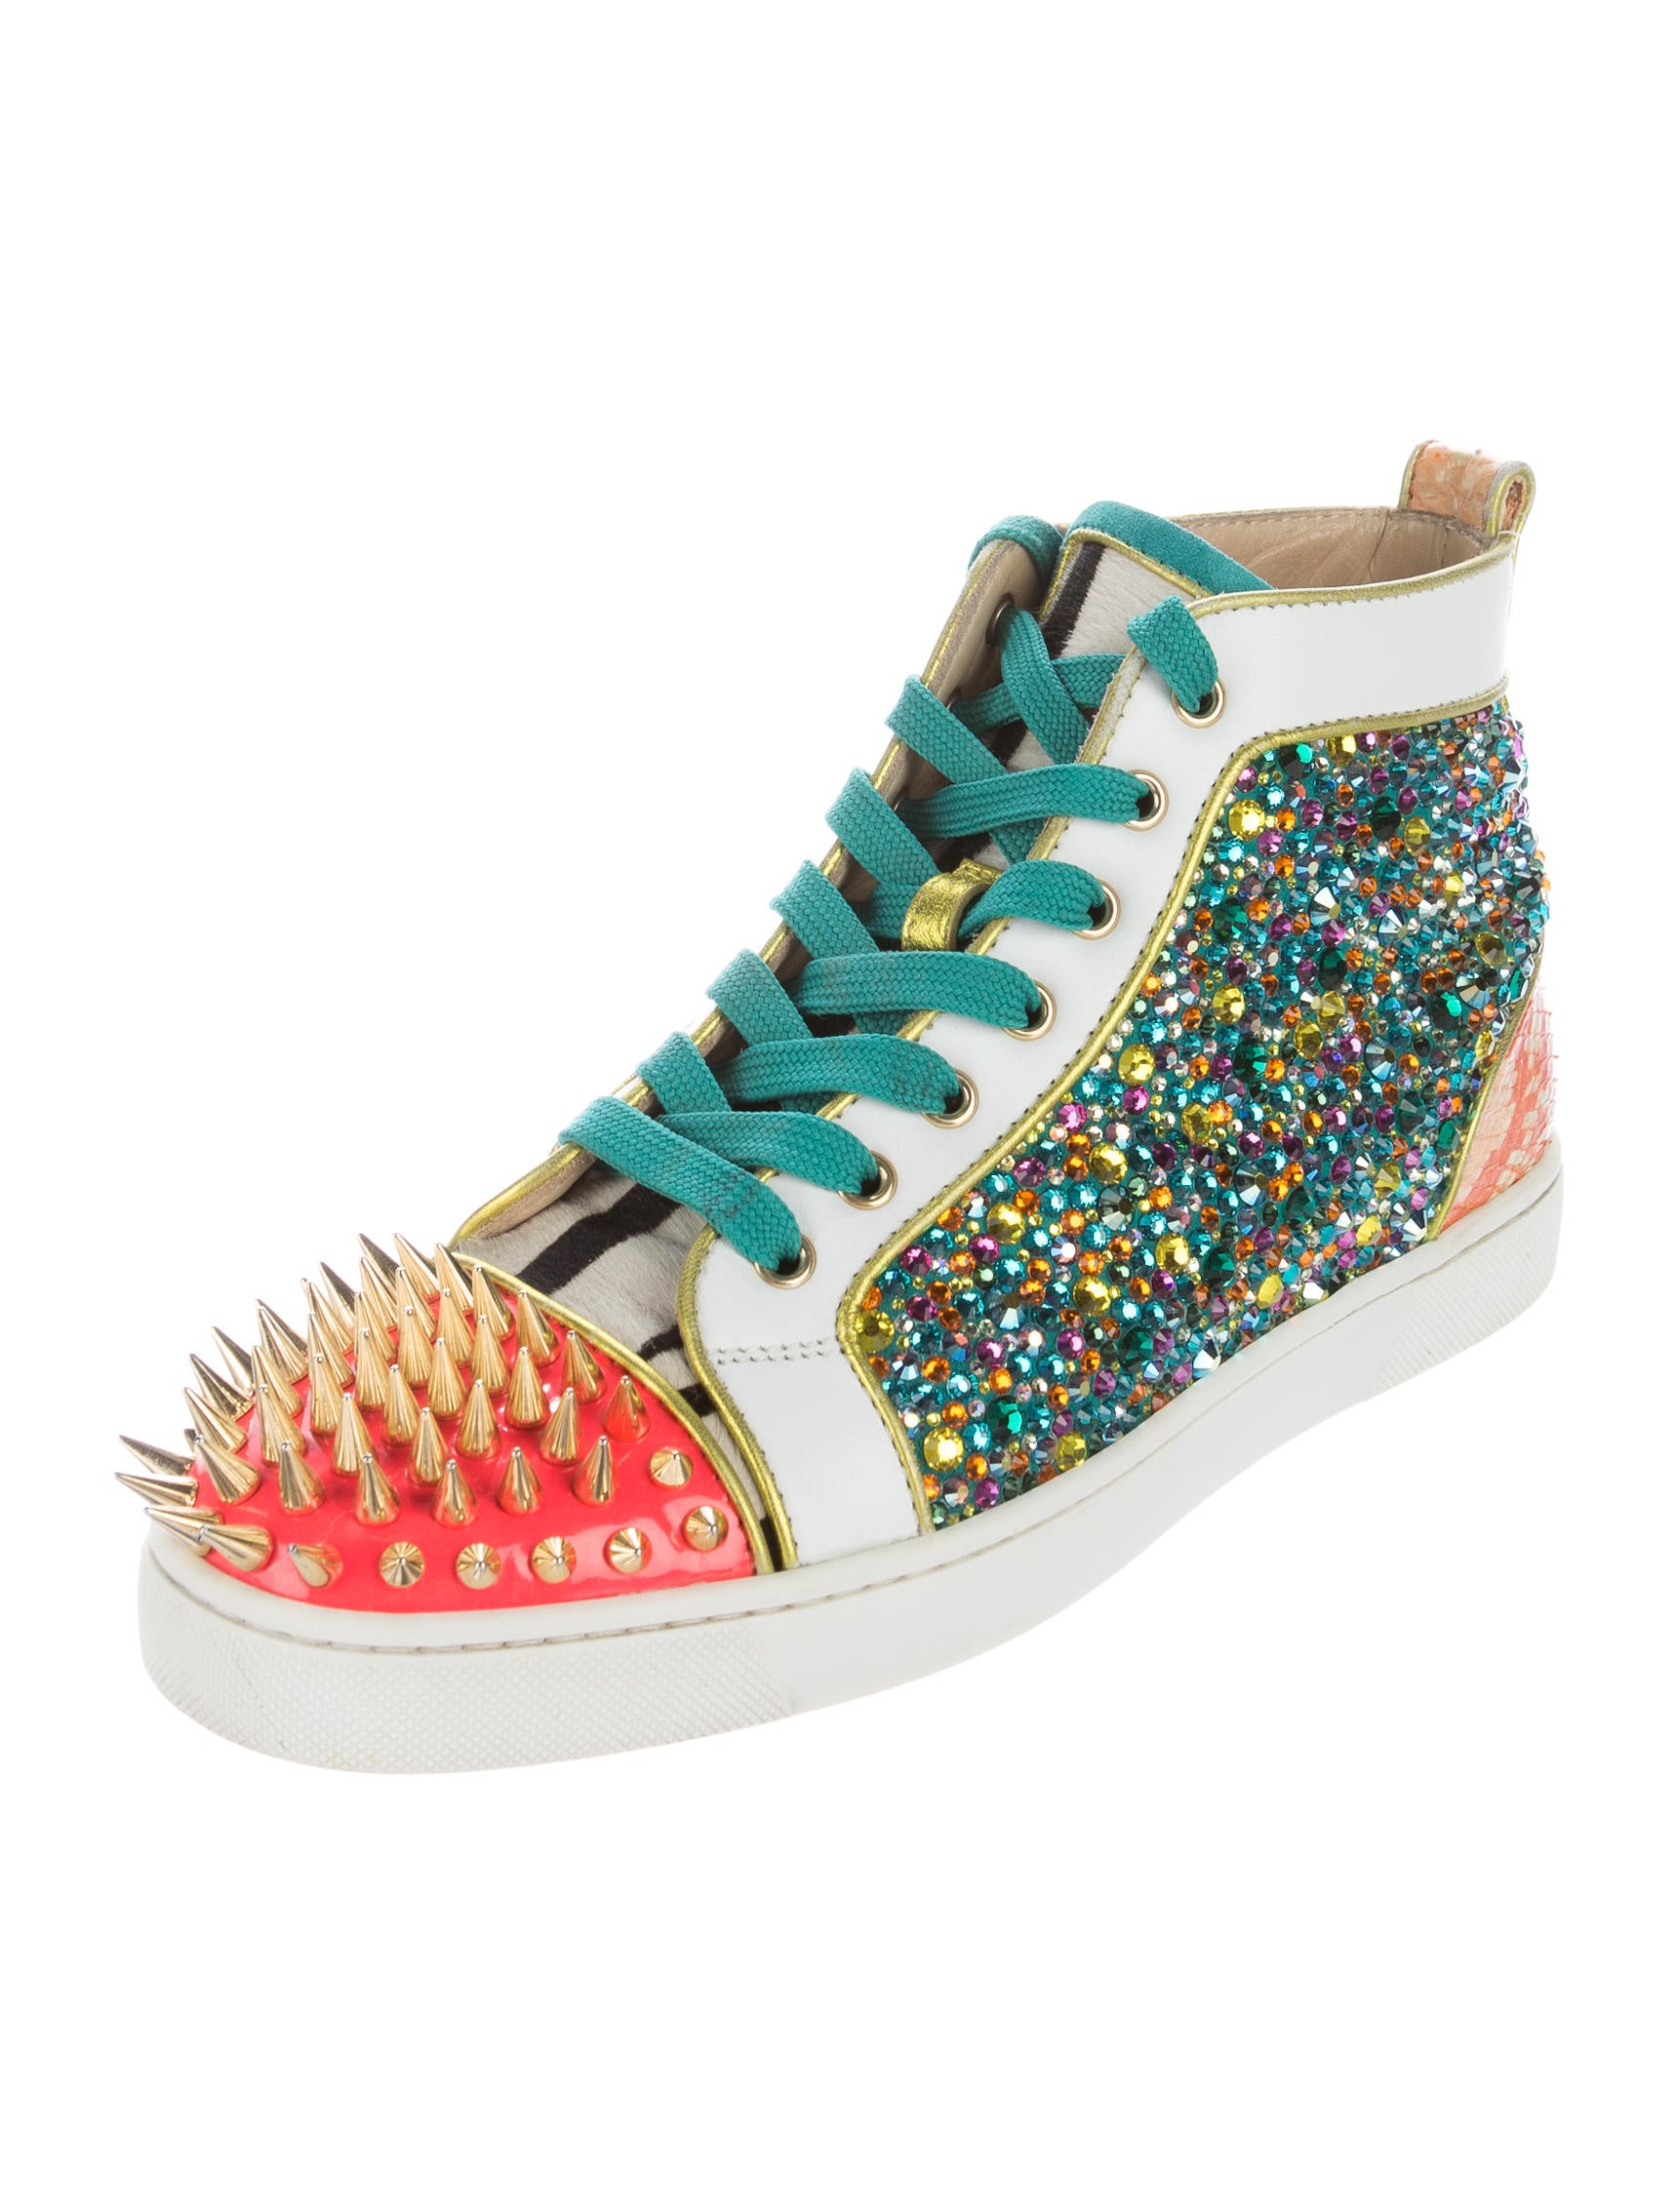 Christian Louboutin Snakeskin Trimmed No Limit Sneakers